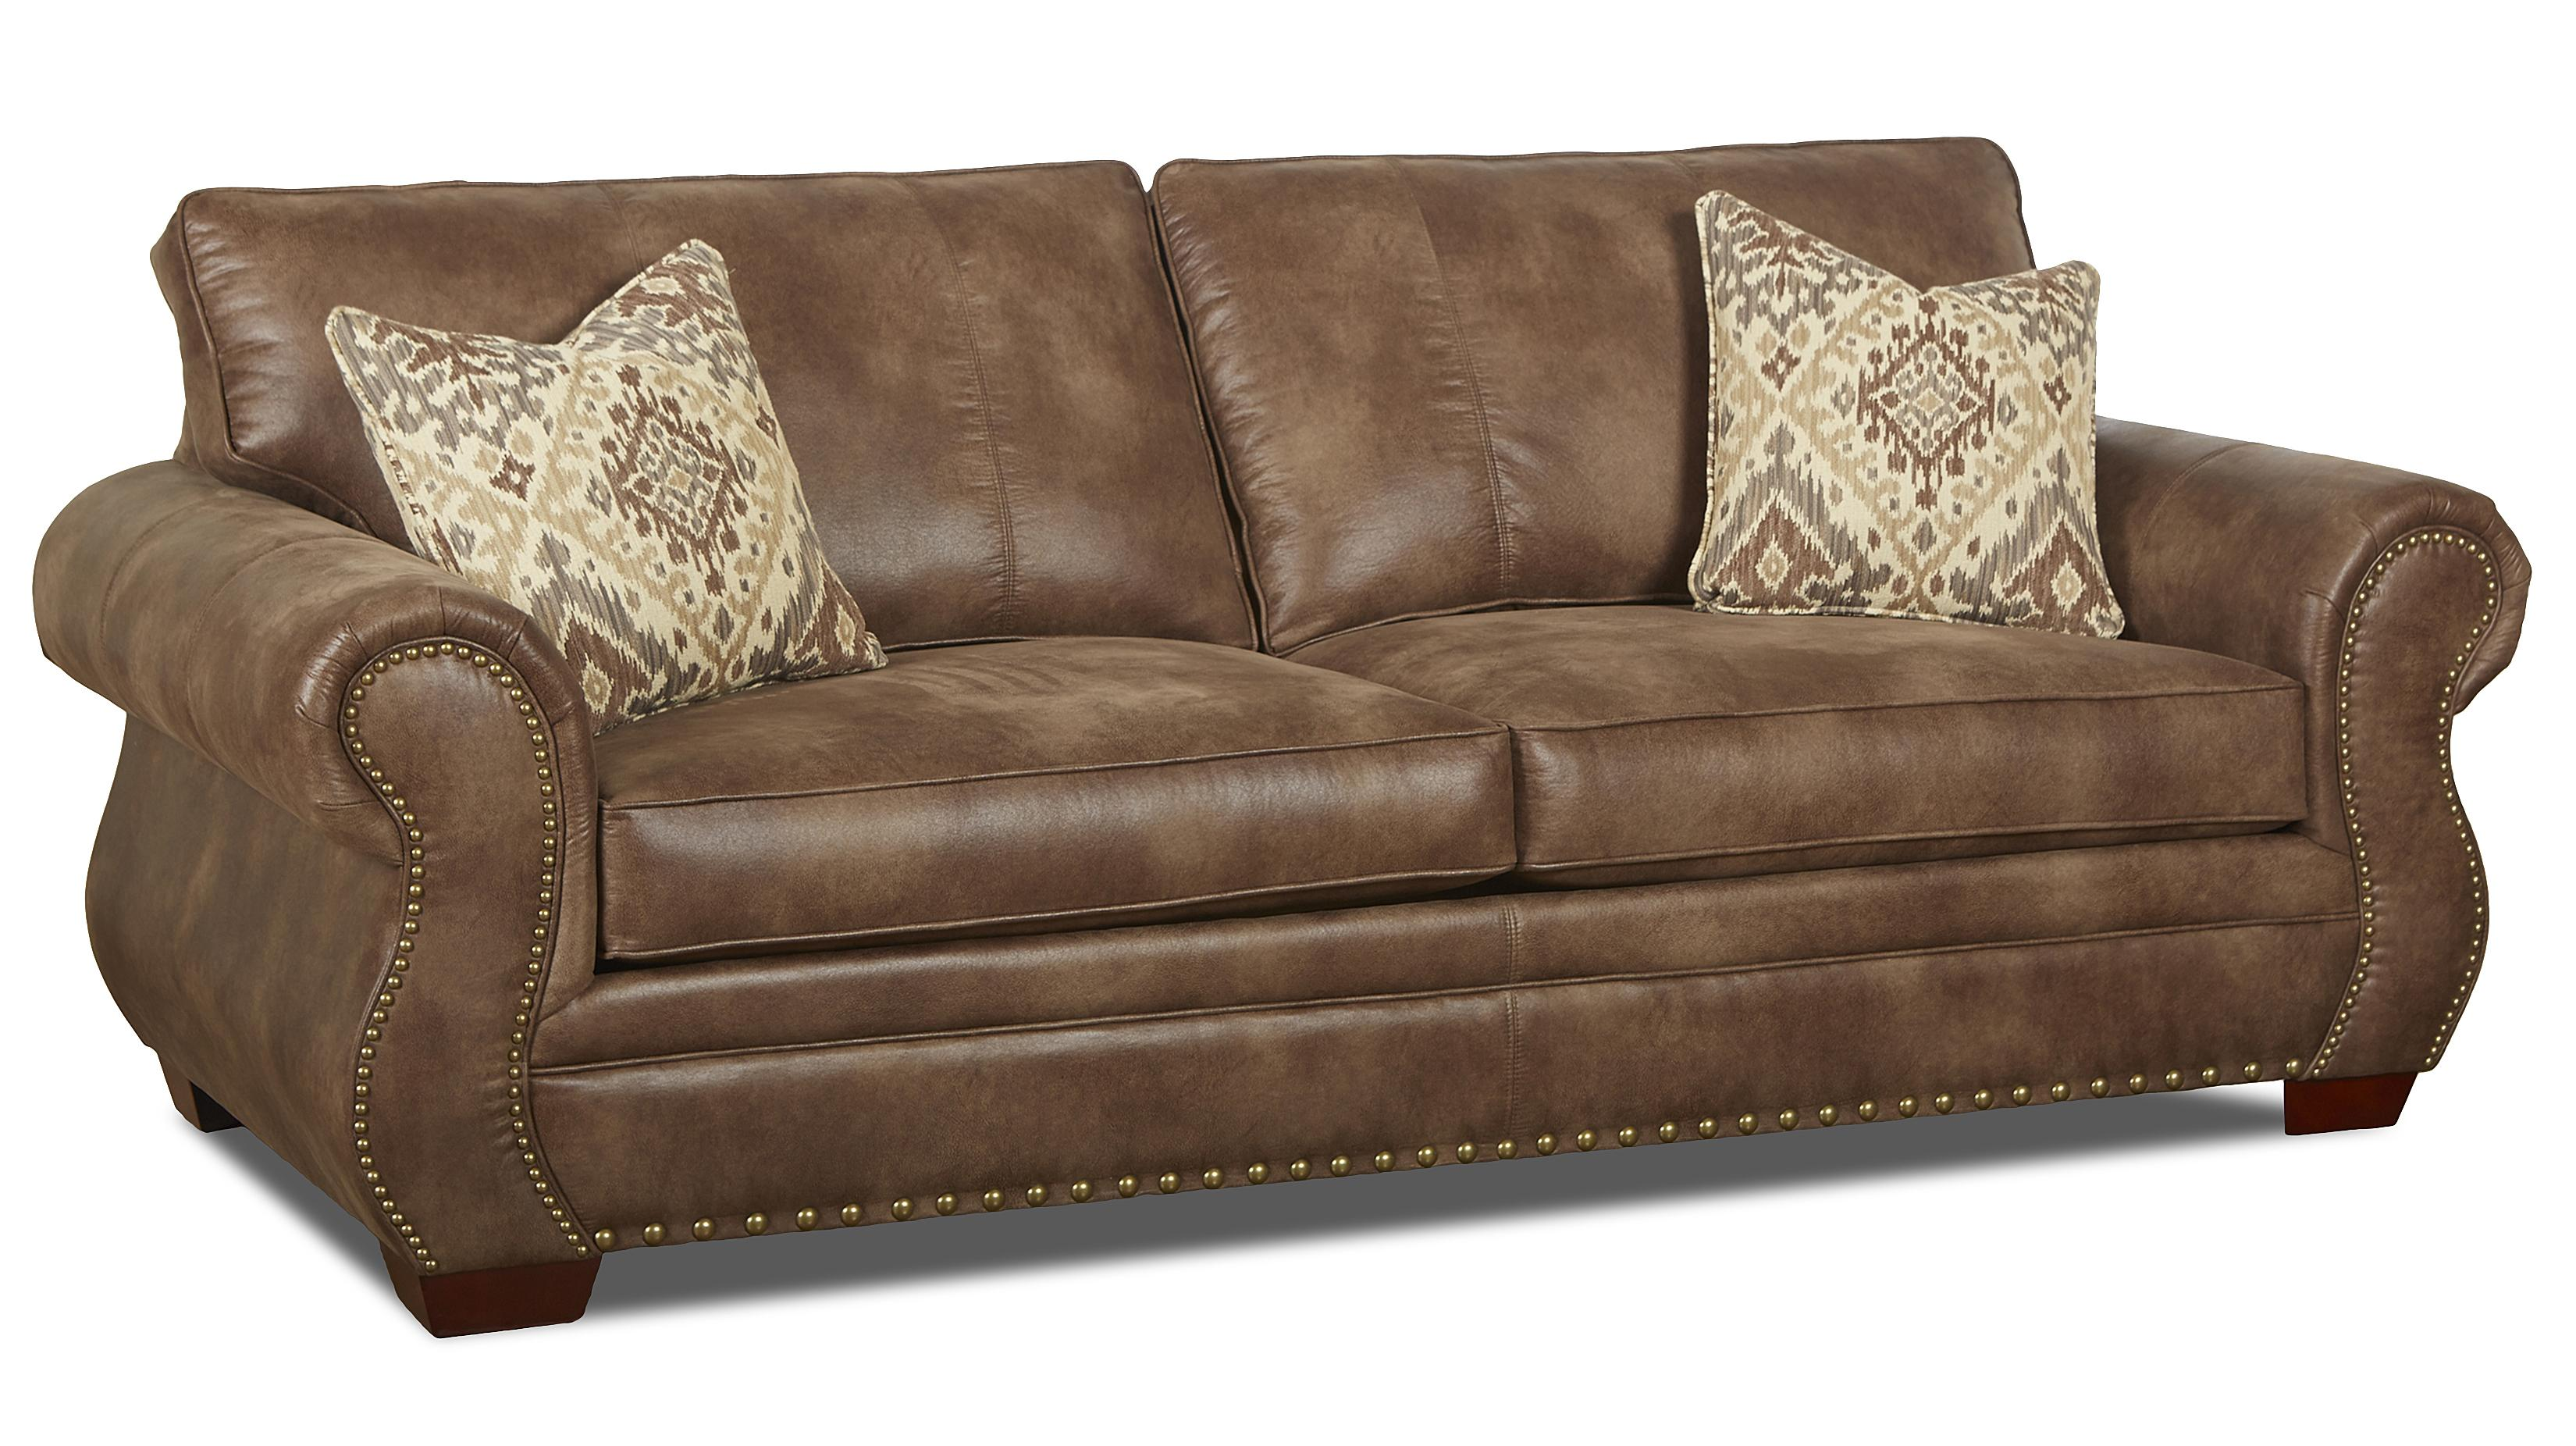 Traditional Dreamquest Regular Sleeper Sofa with Nailhead Trim and